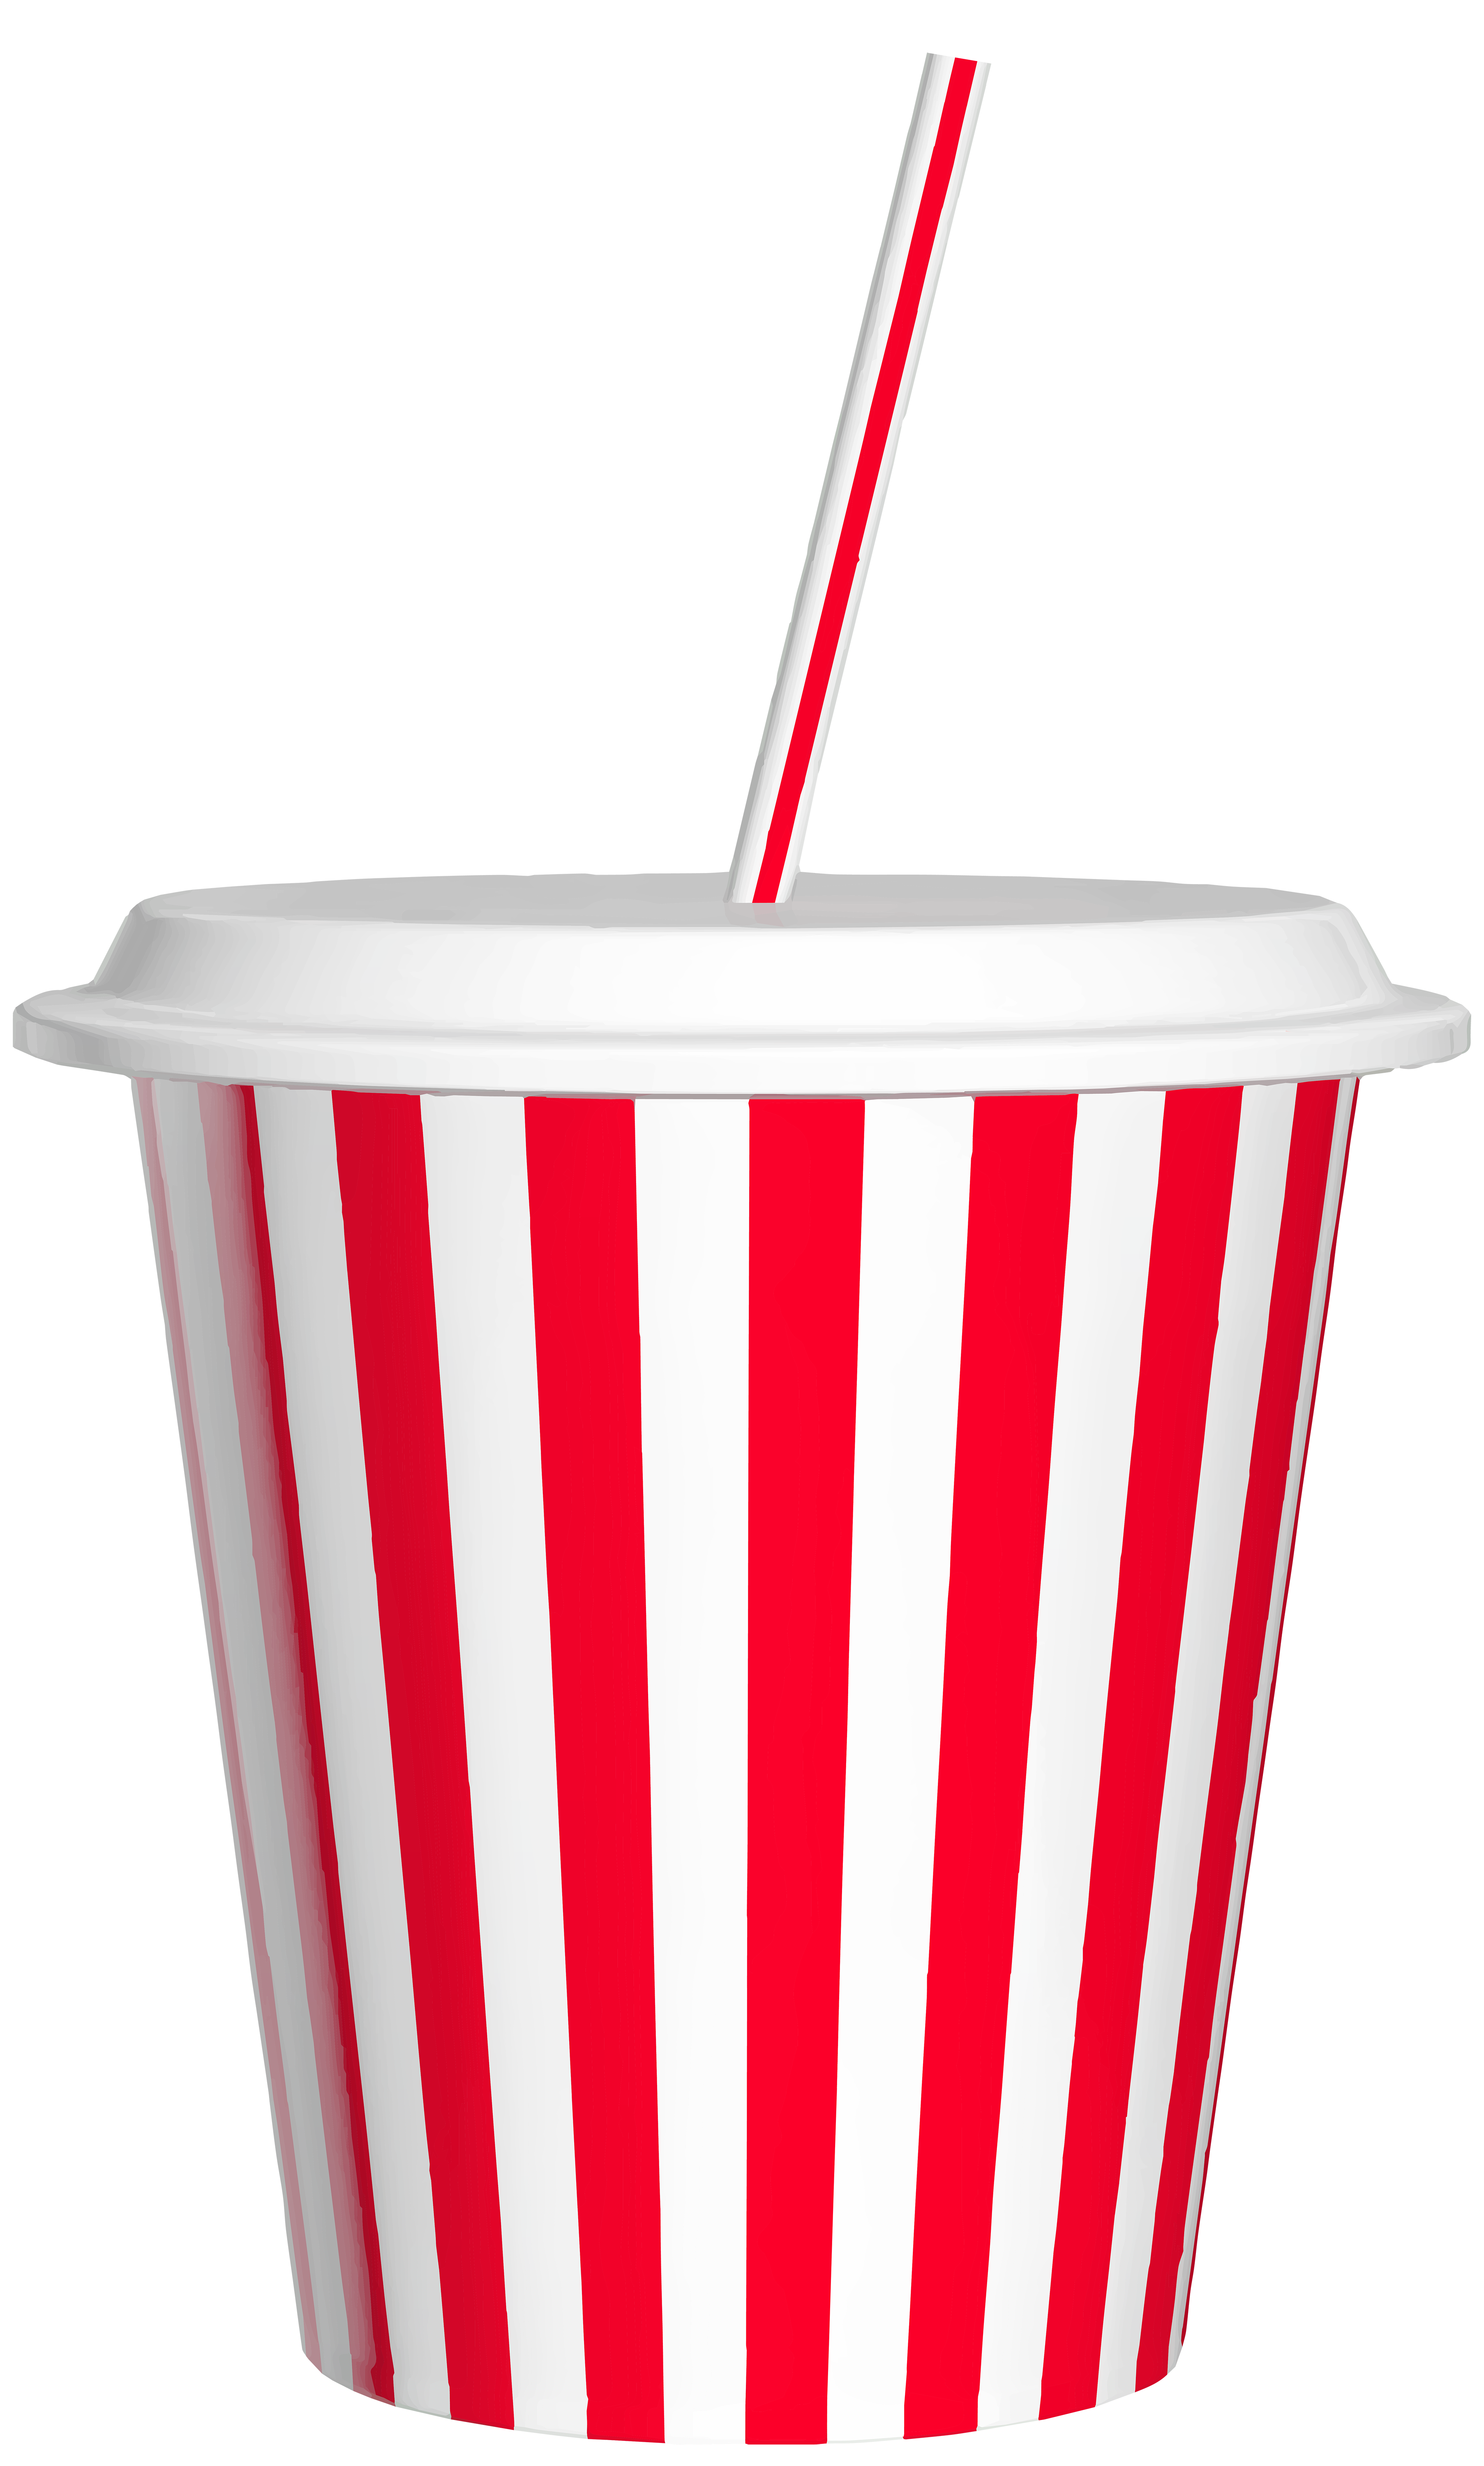 Fast food cup png. Drink with straw clip